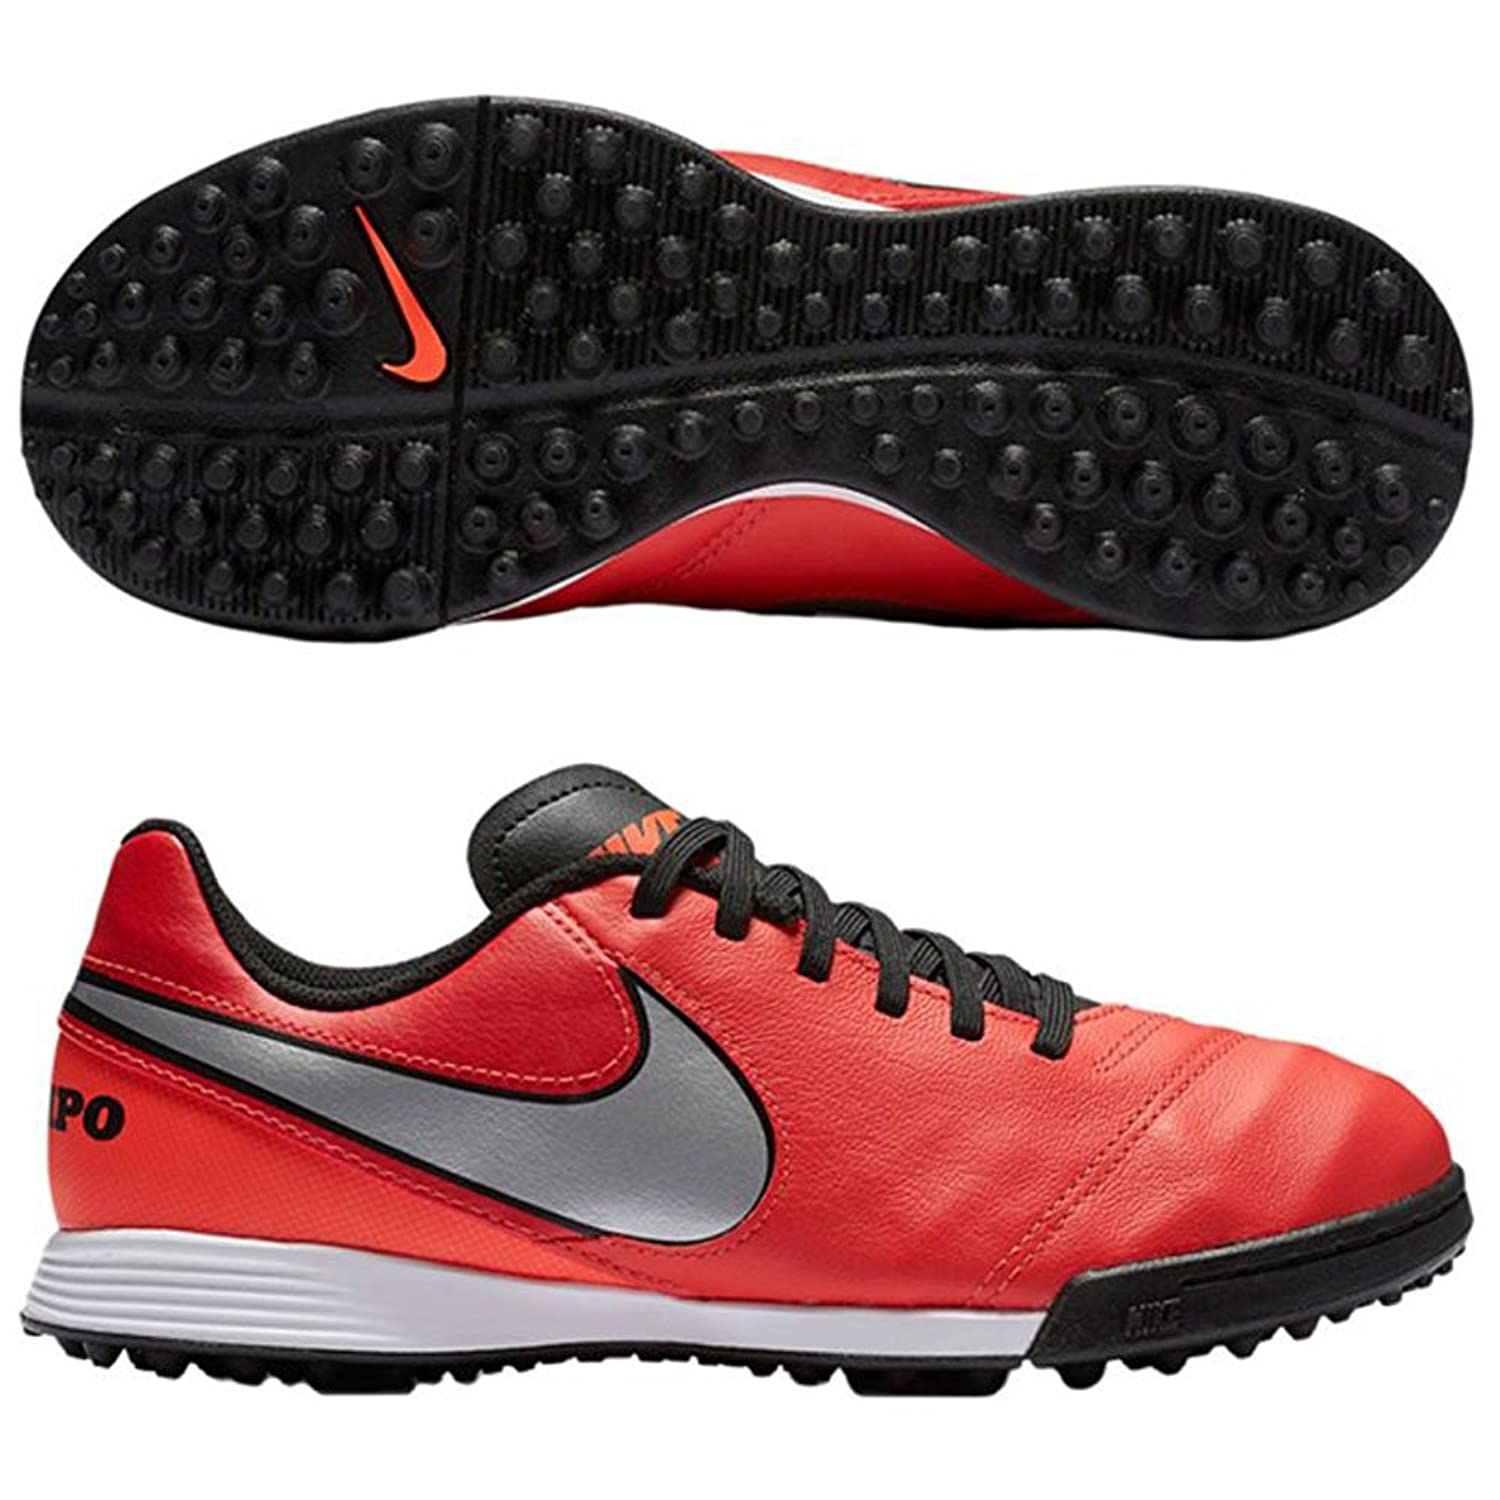 5c6561d9a41f 70%OFF Nike Youth Soccer Tiempo Legend VI Turf Shoes - s132716079 ...